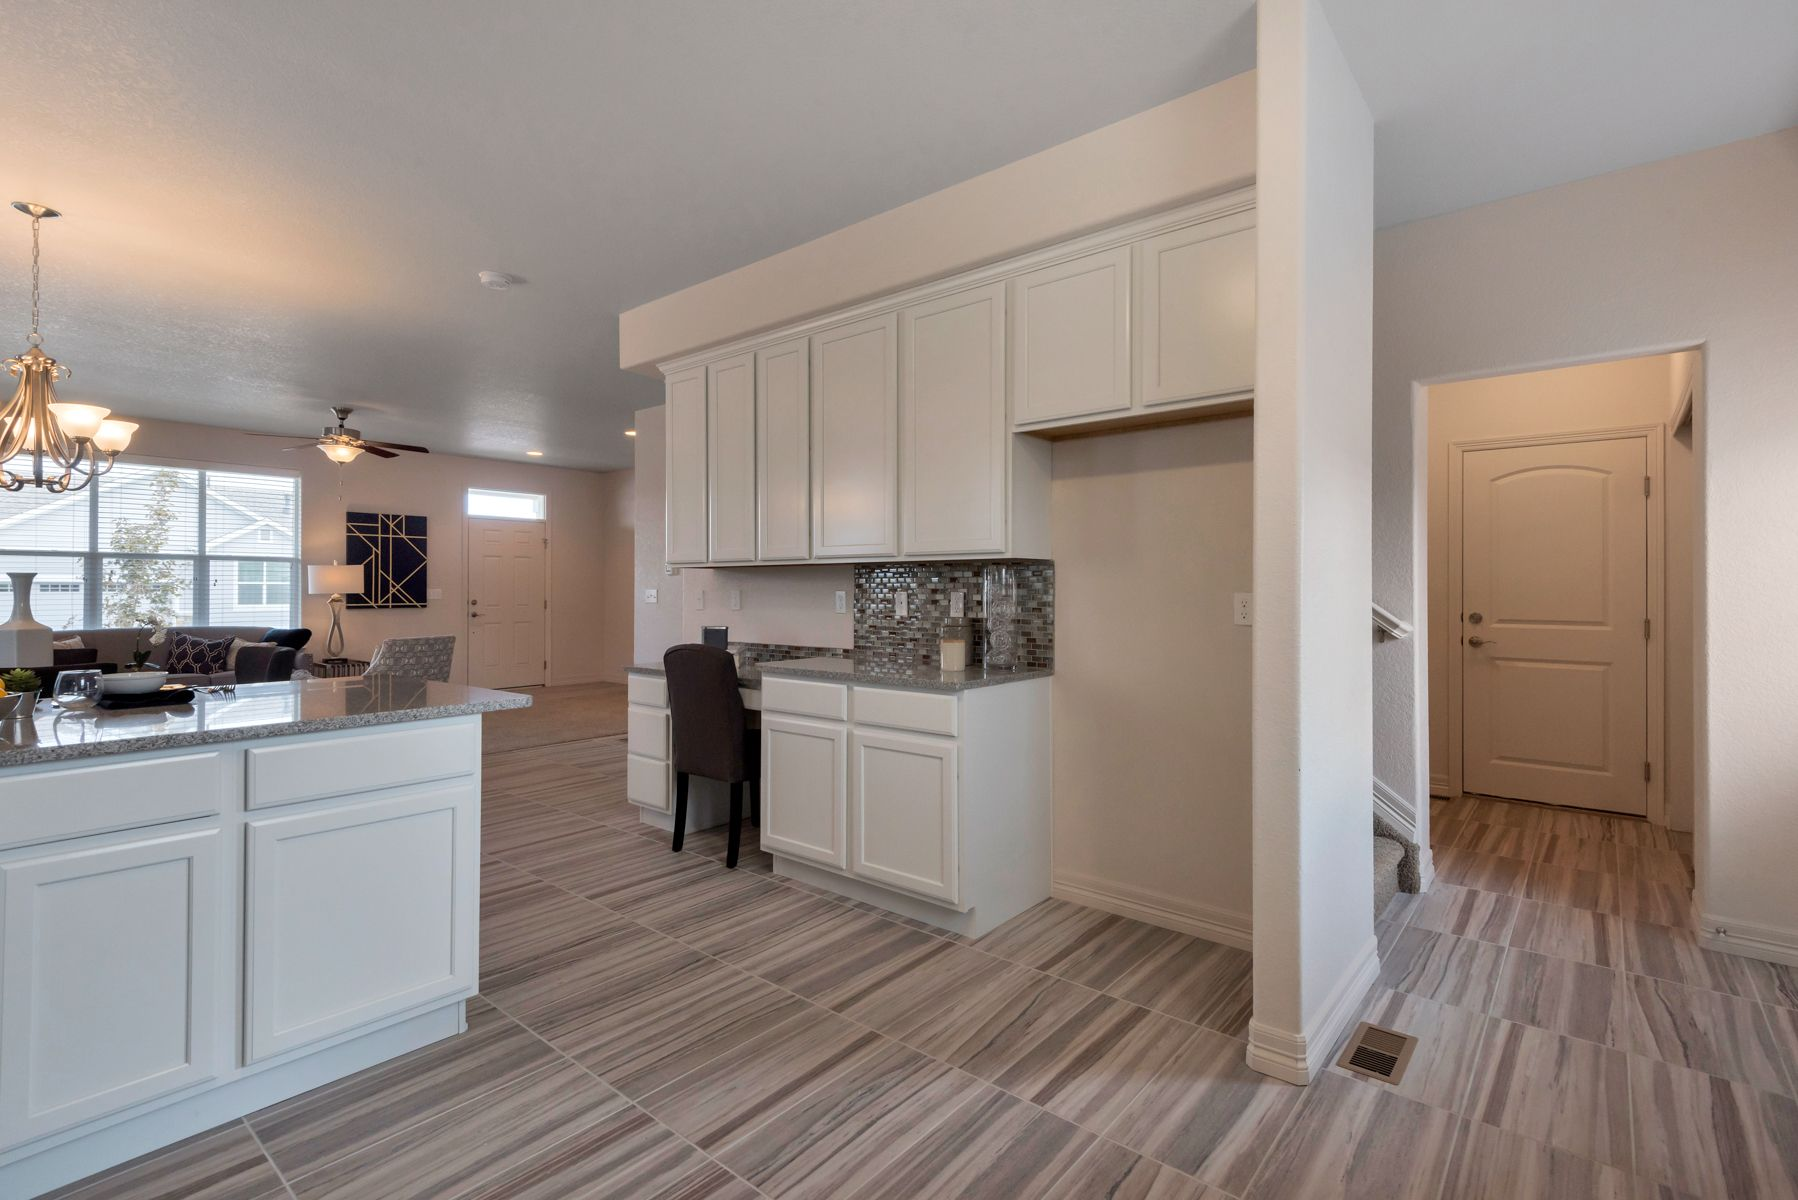 Kitchen featured in the Violet at Blackstone Ranch By Pauls Homes in Denver, CO